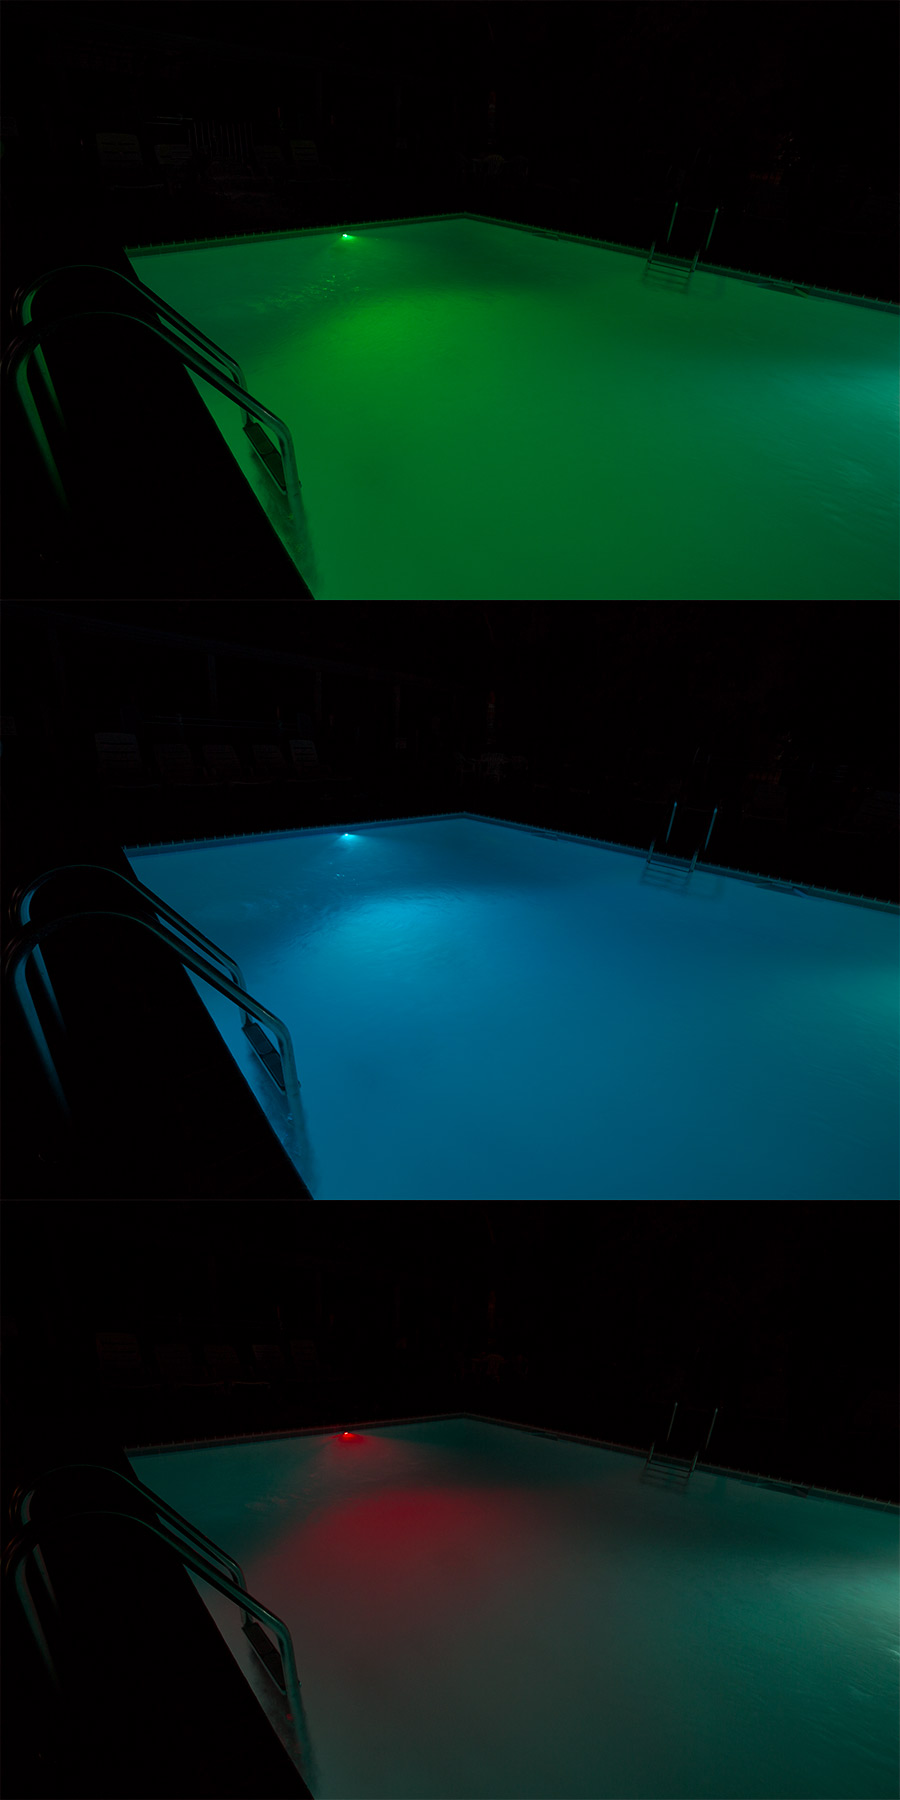 RGB LED Underwater Boat Lights and Dock Lights - Single Lens - 60W Shown Lighting Pool In Green (Top) Blue (Center) And Red (Bottom) Color Modes. & RGB LED Underwater Pool Lights and Fountain/Pond Lights - Single ...